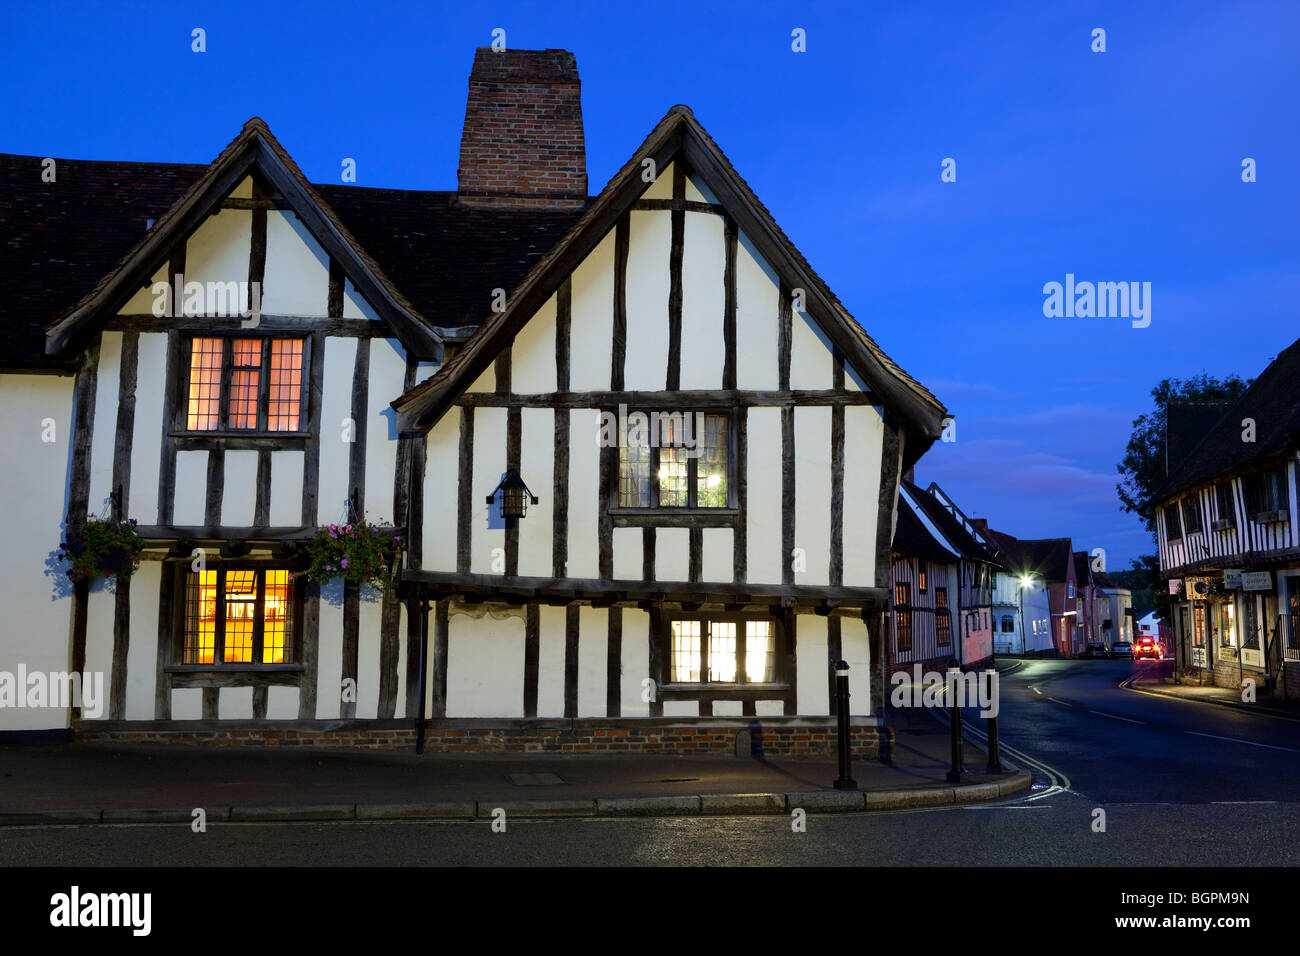 Swan Hotel at dusk - Stock Image